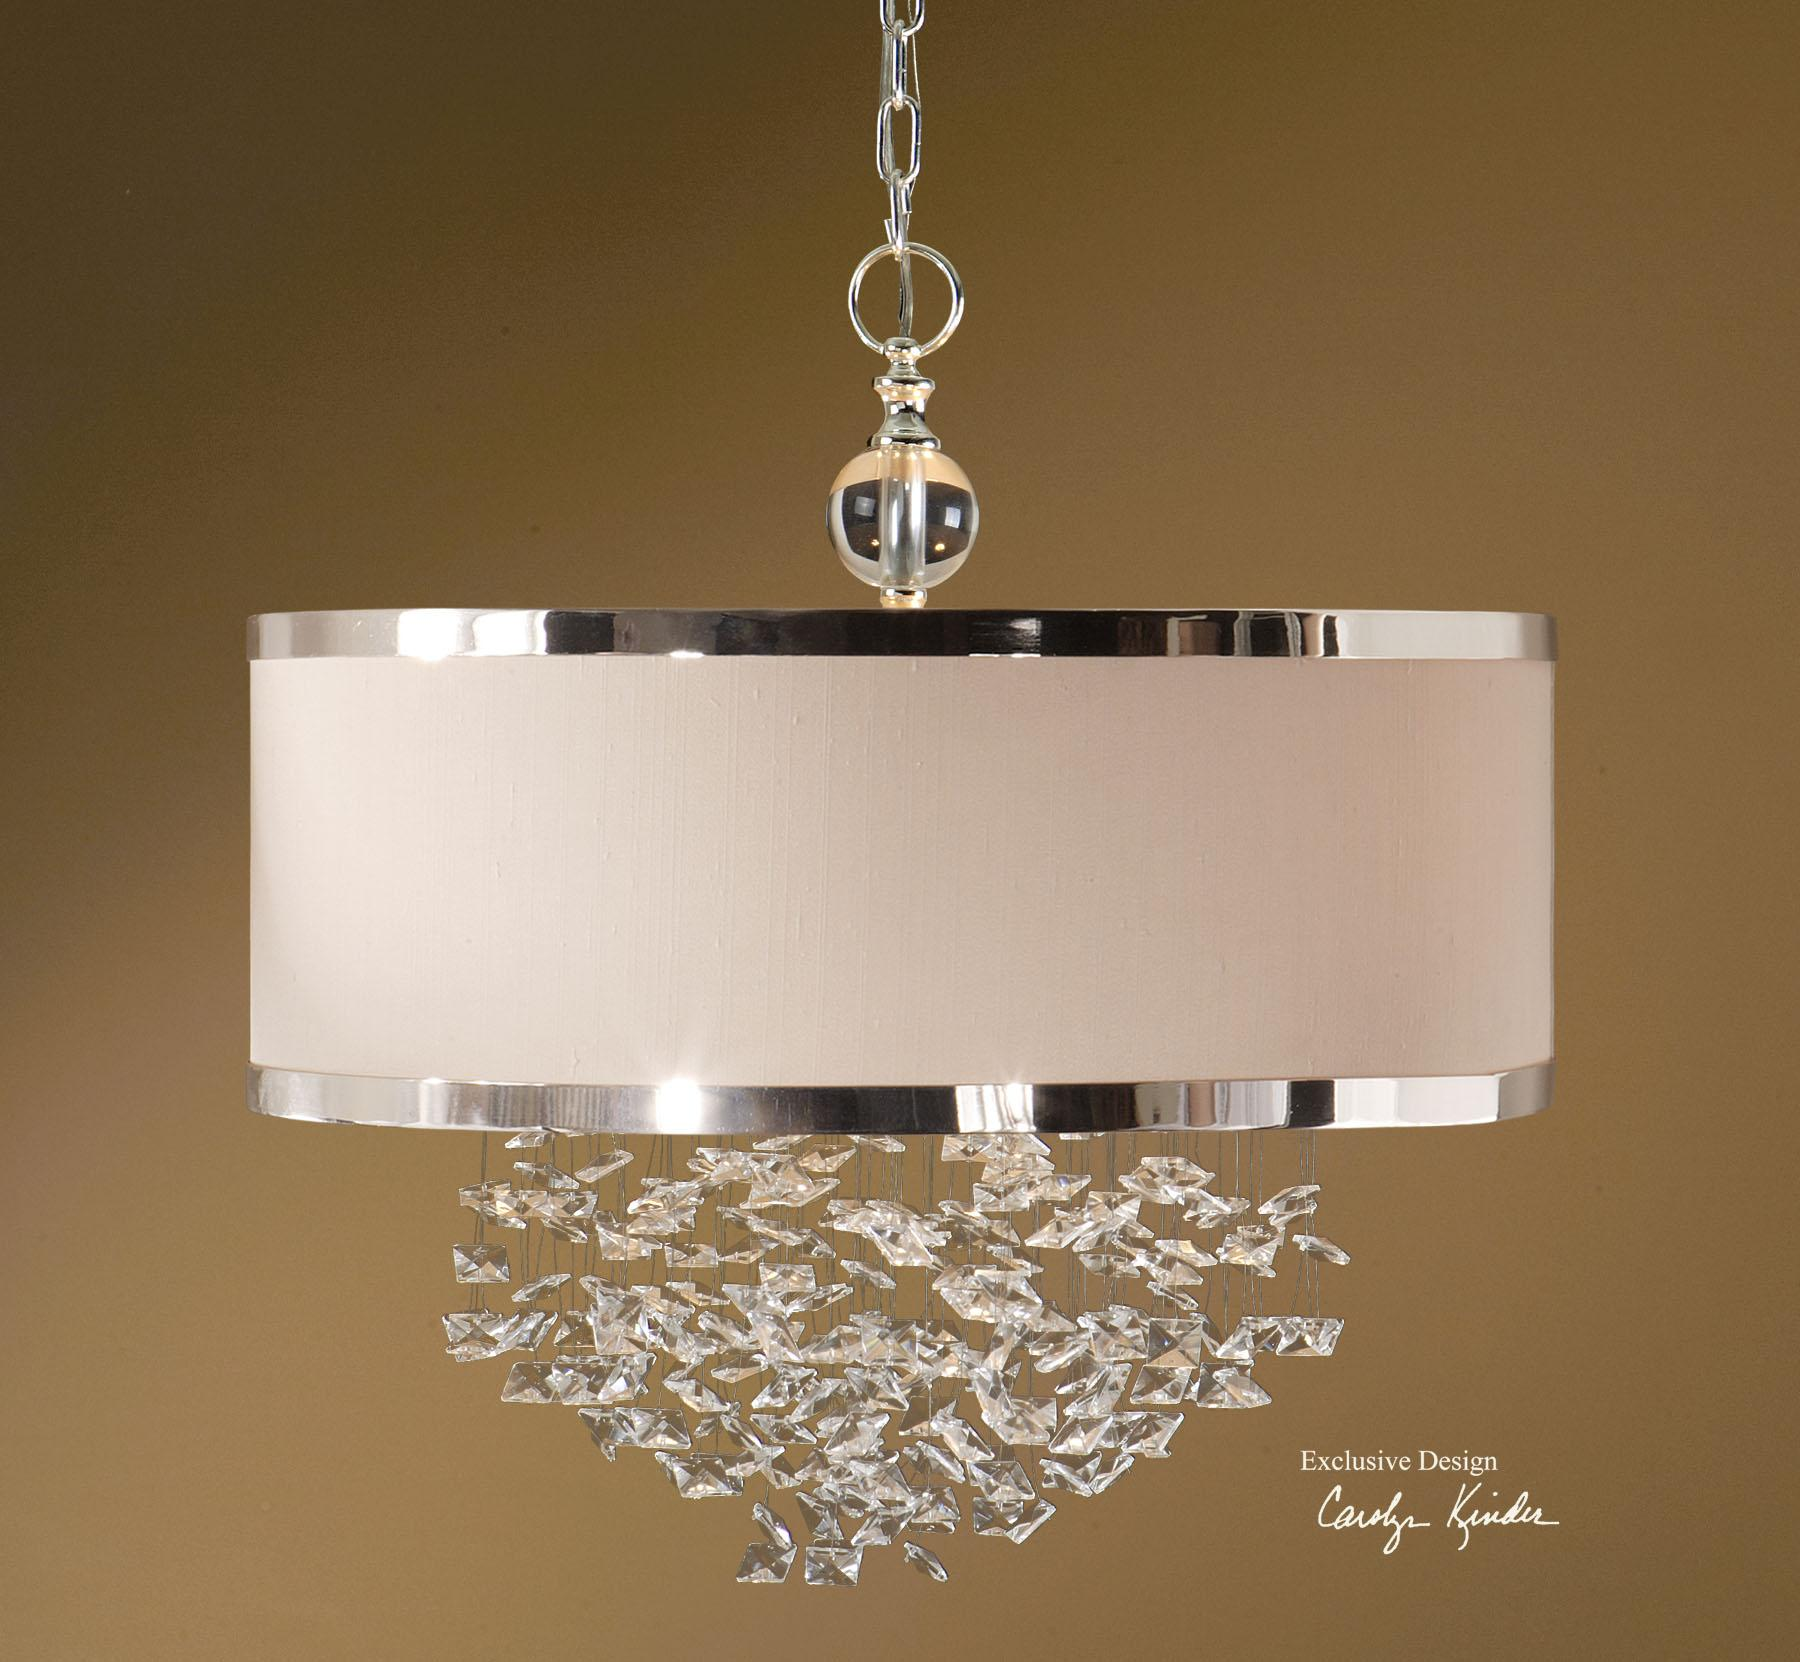 Uttermost Lighting Fixtures Fascination 3 Light Hanging Shade - Item Number: 21908